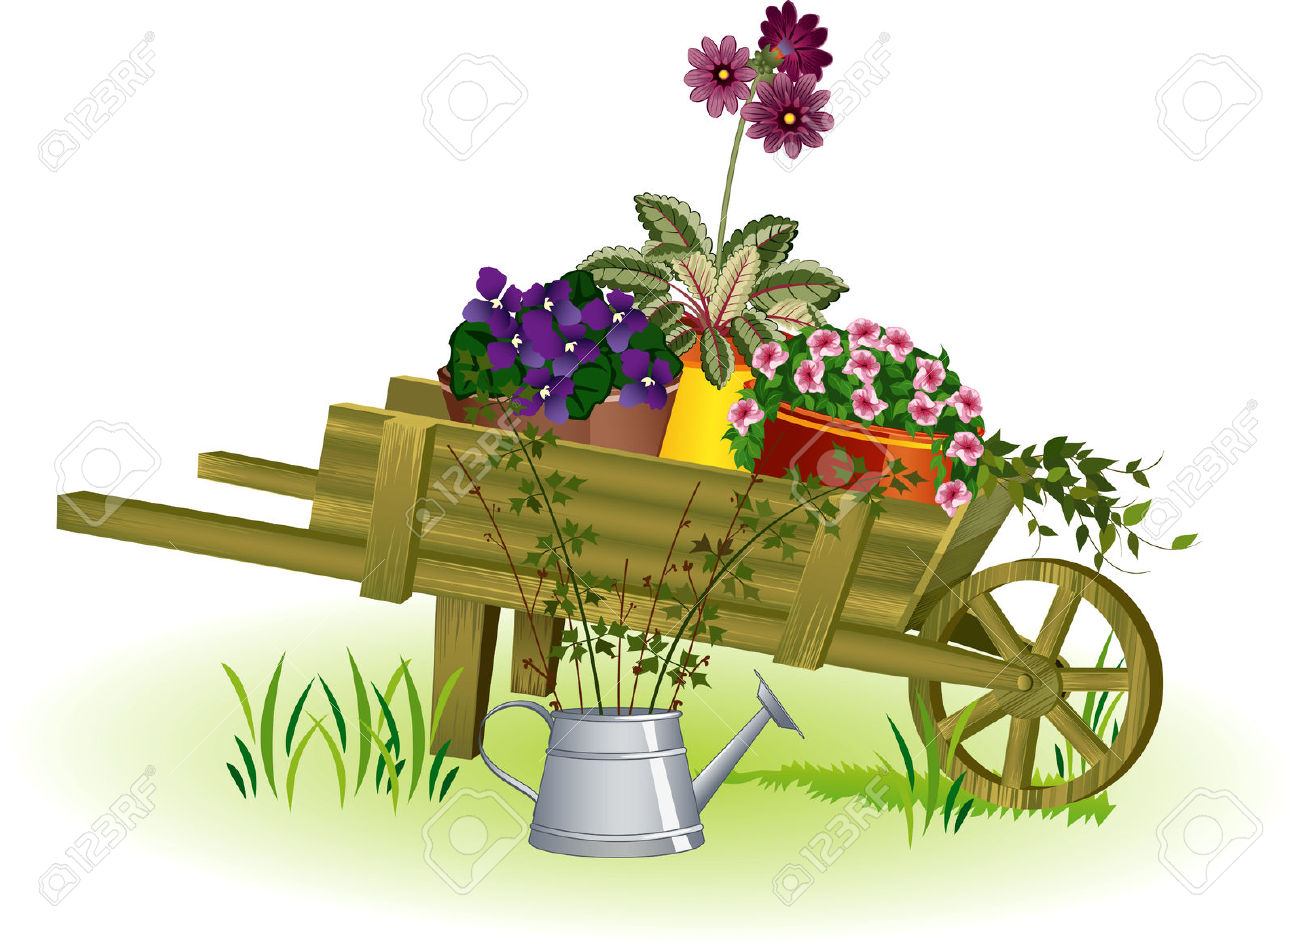 Wheelbarrow With Flowers Clipart.